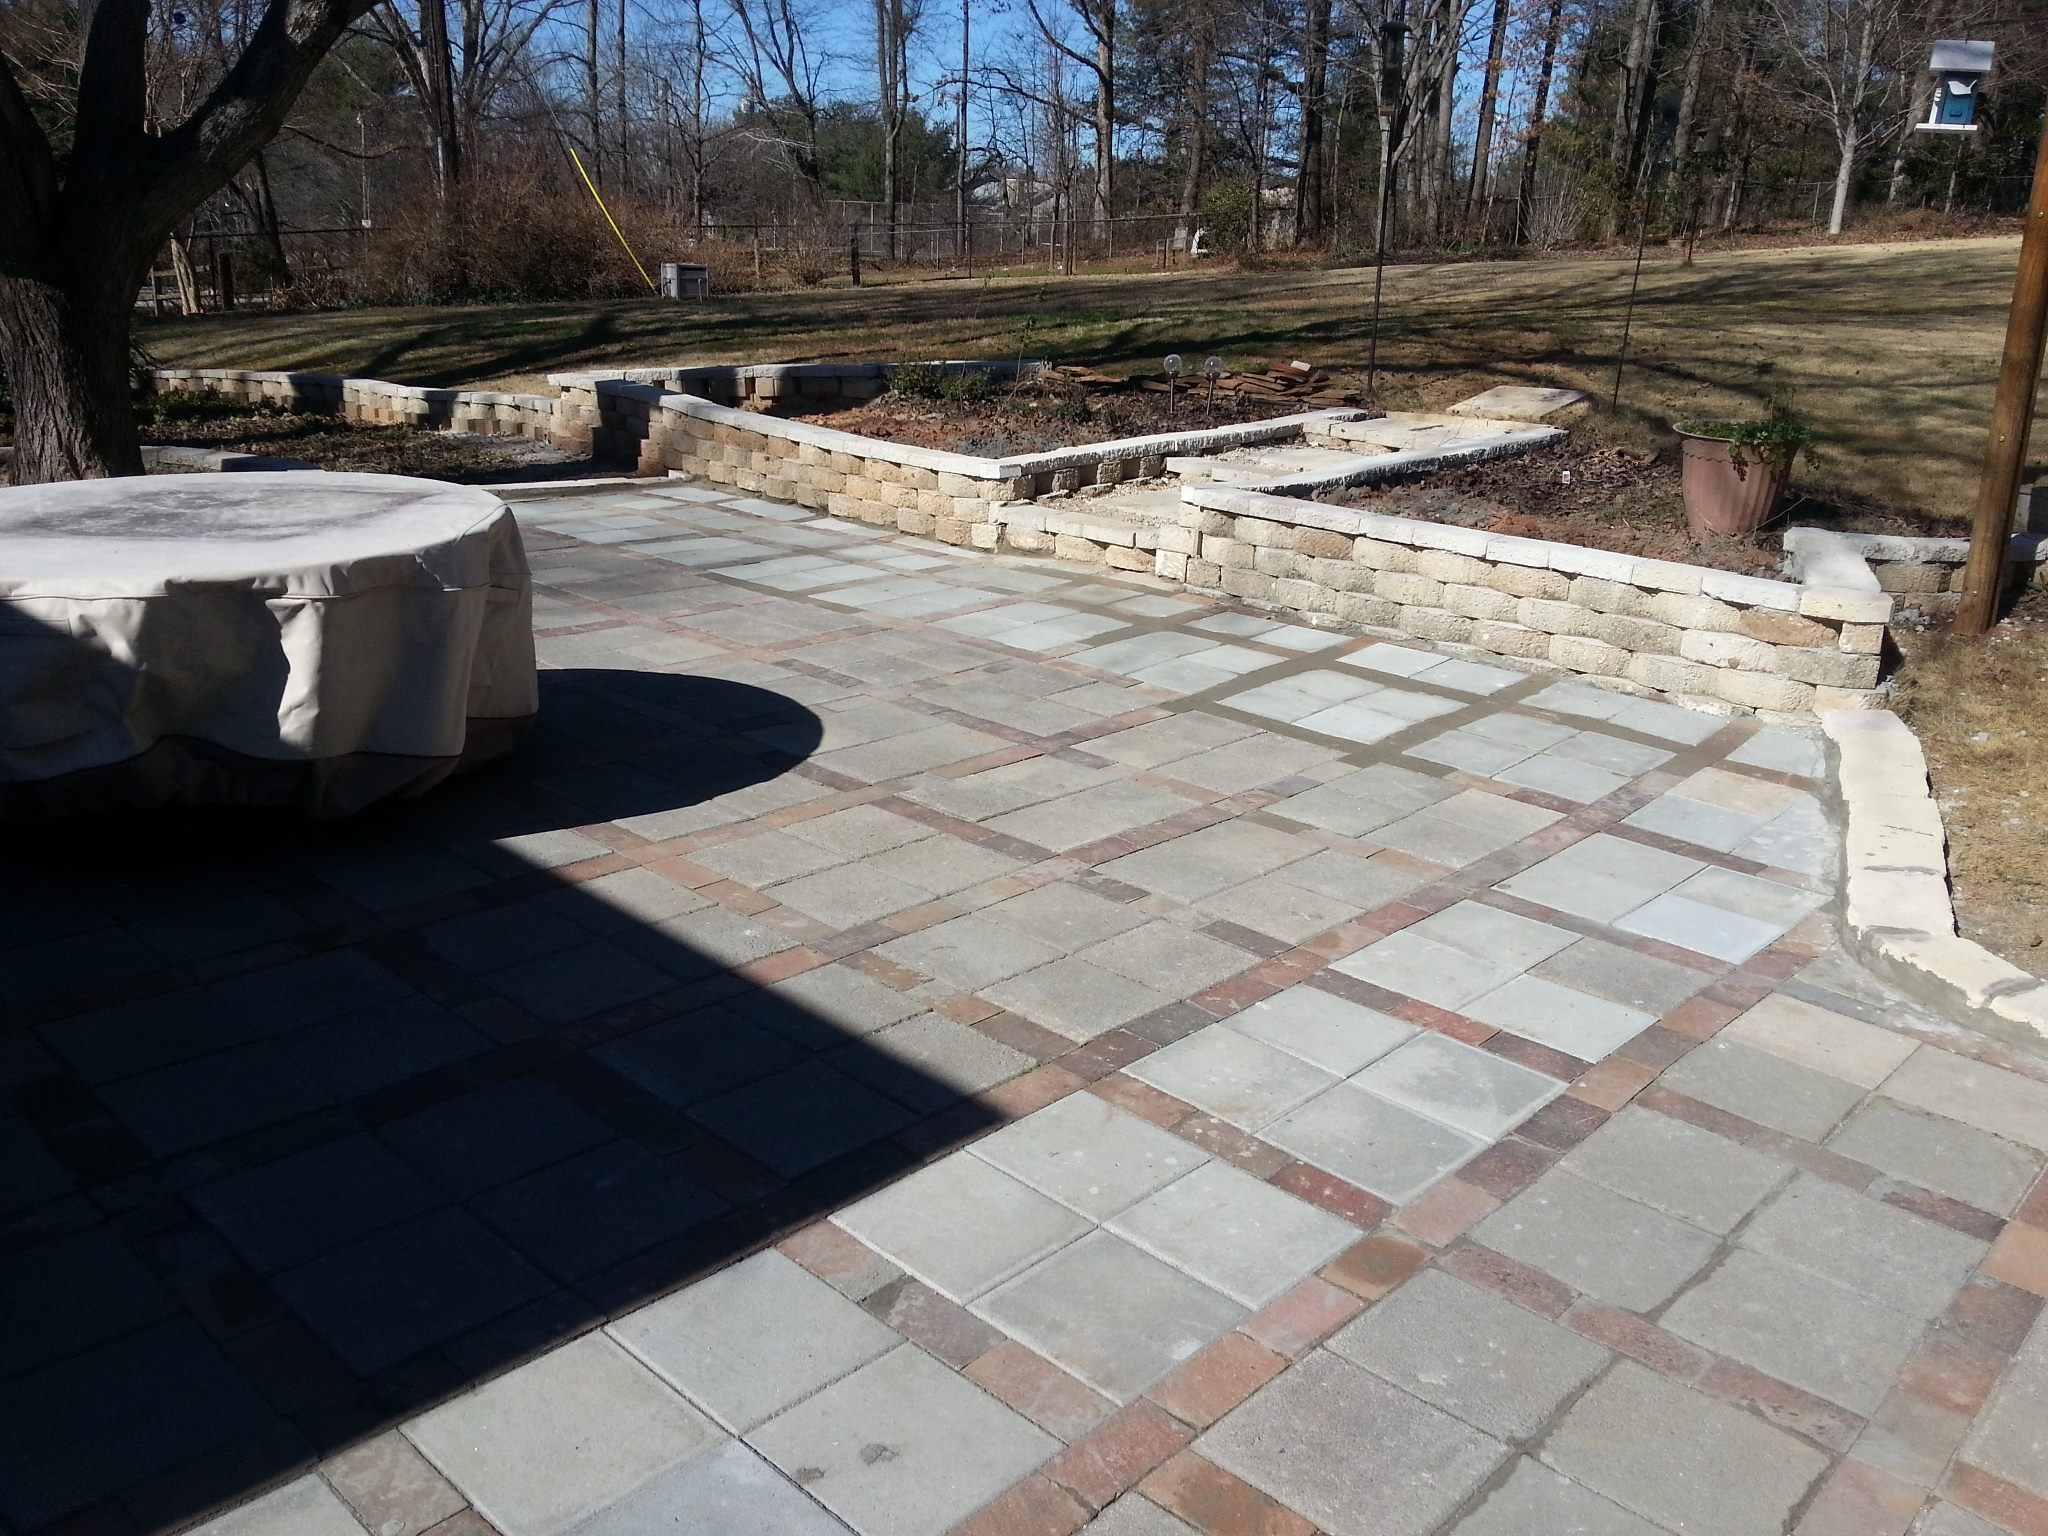 Paver Patios & Sidewalk Installation Services In Spartanburg & Greenville, SC